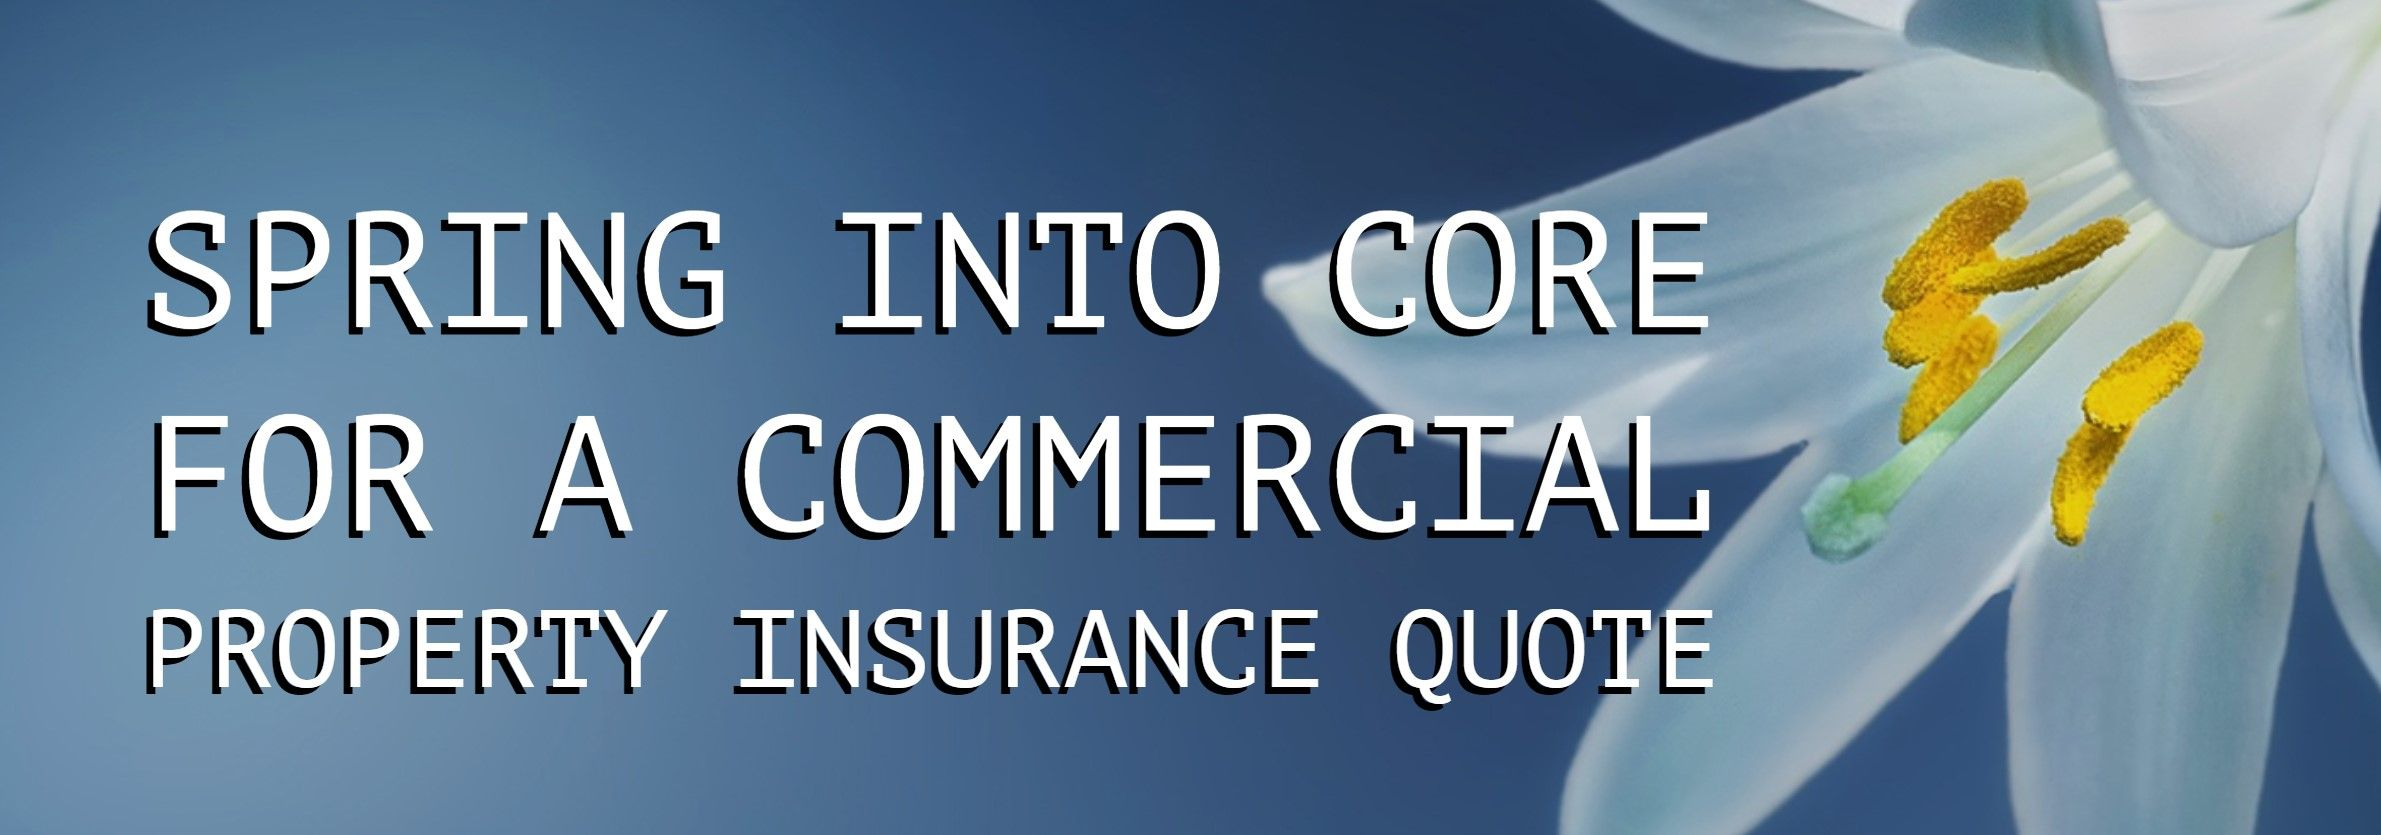 commercial property insurance Commercial property